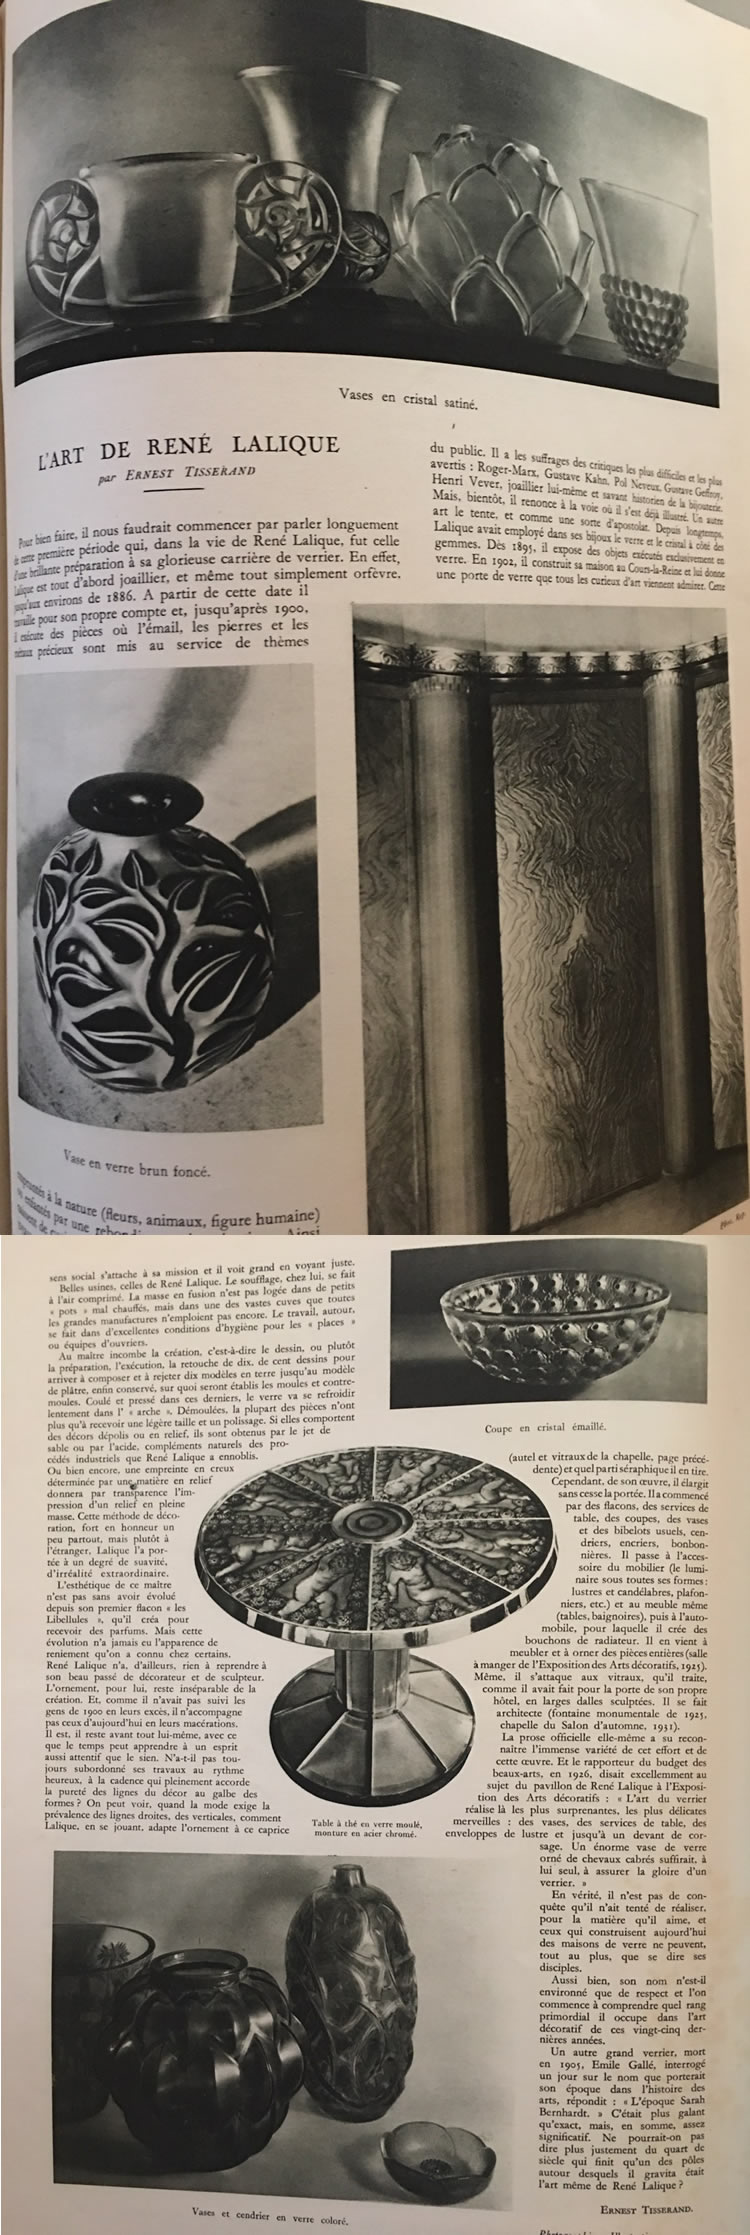 Rene Lalique L'Illustration June 11 1932 Magazine